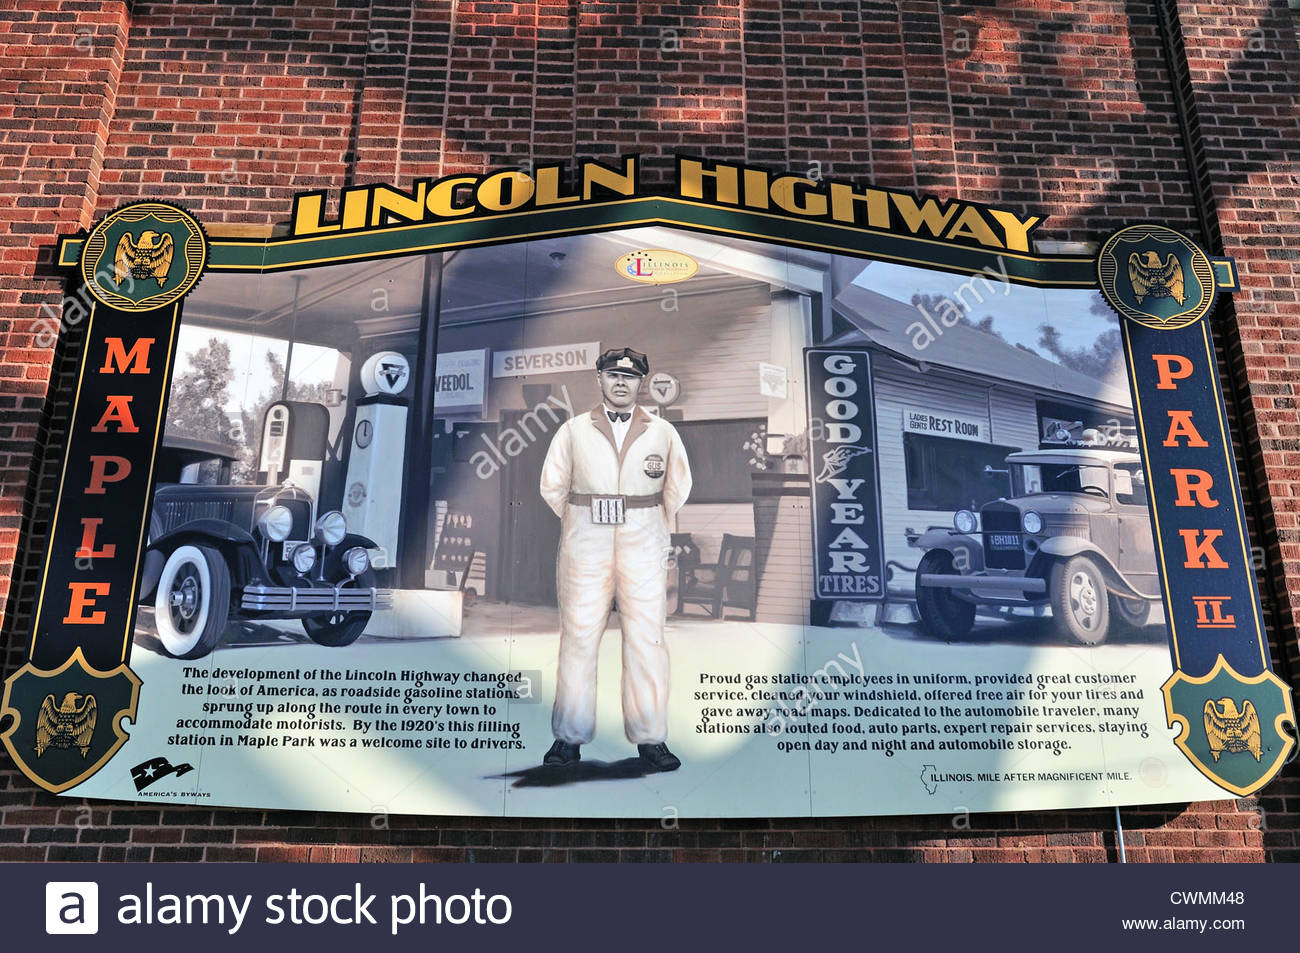 USA Illinois Maple Park Interpretive mural along the Illinois Lincoln Highway National Scenic Byway in northern - Stock Image